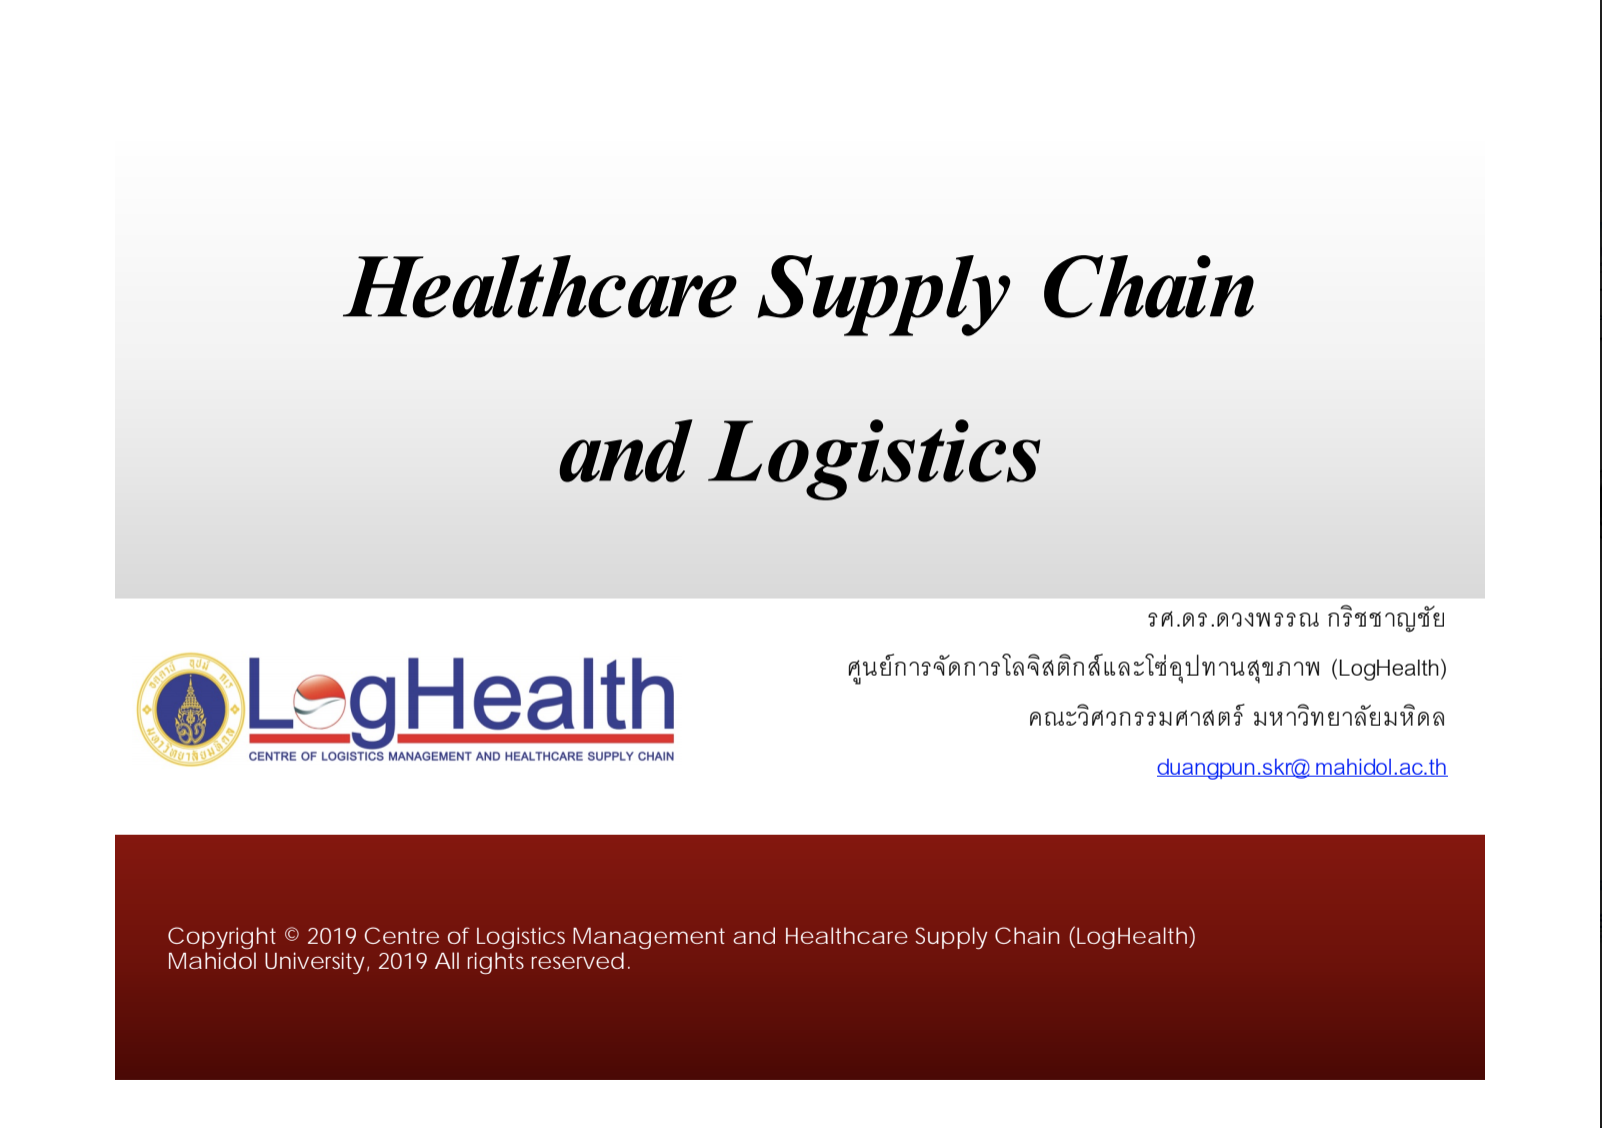 Healthcare Supply Chain and Logistics